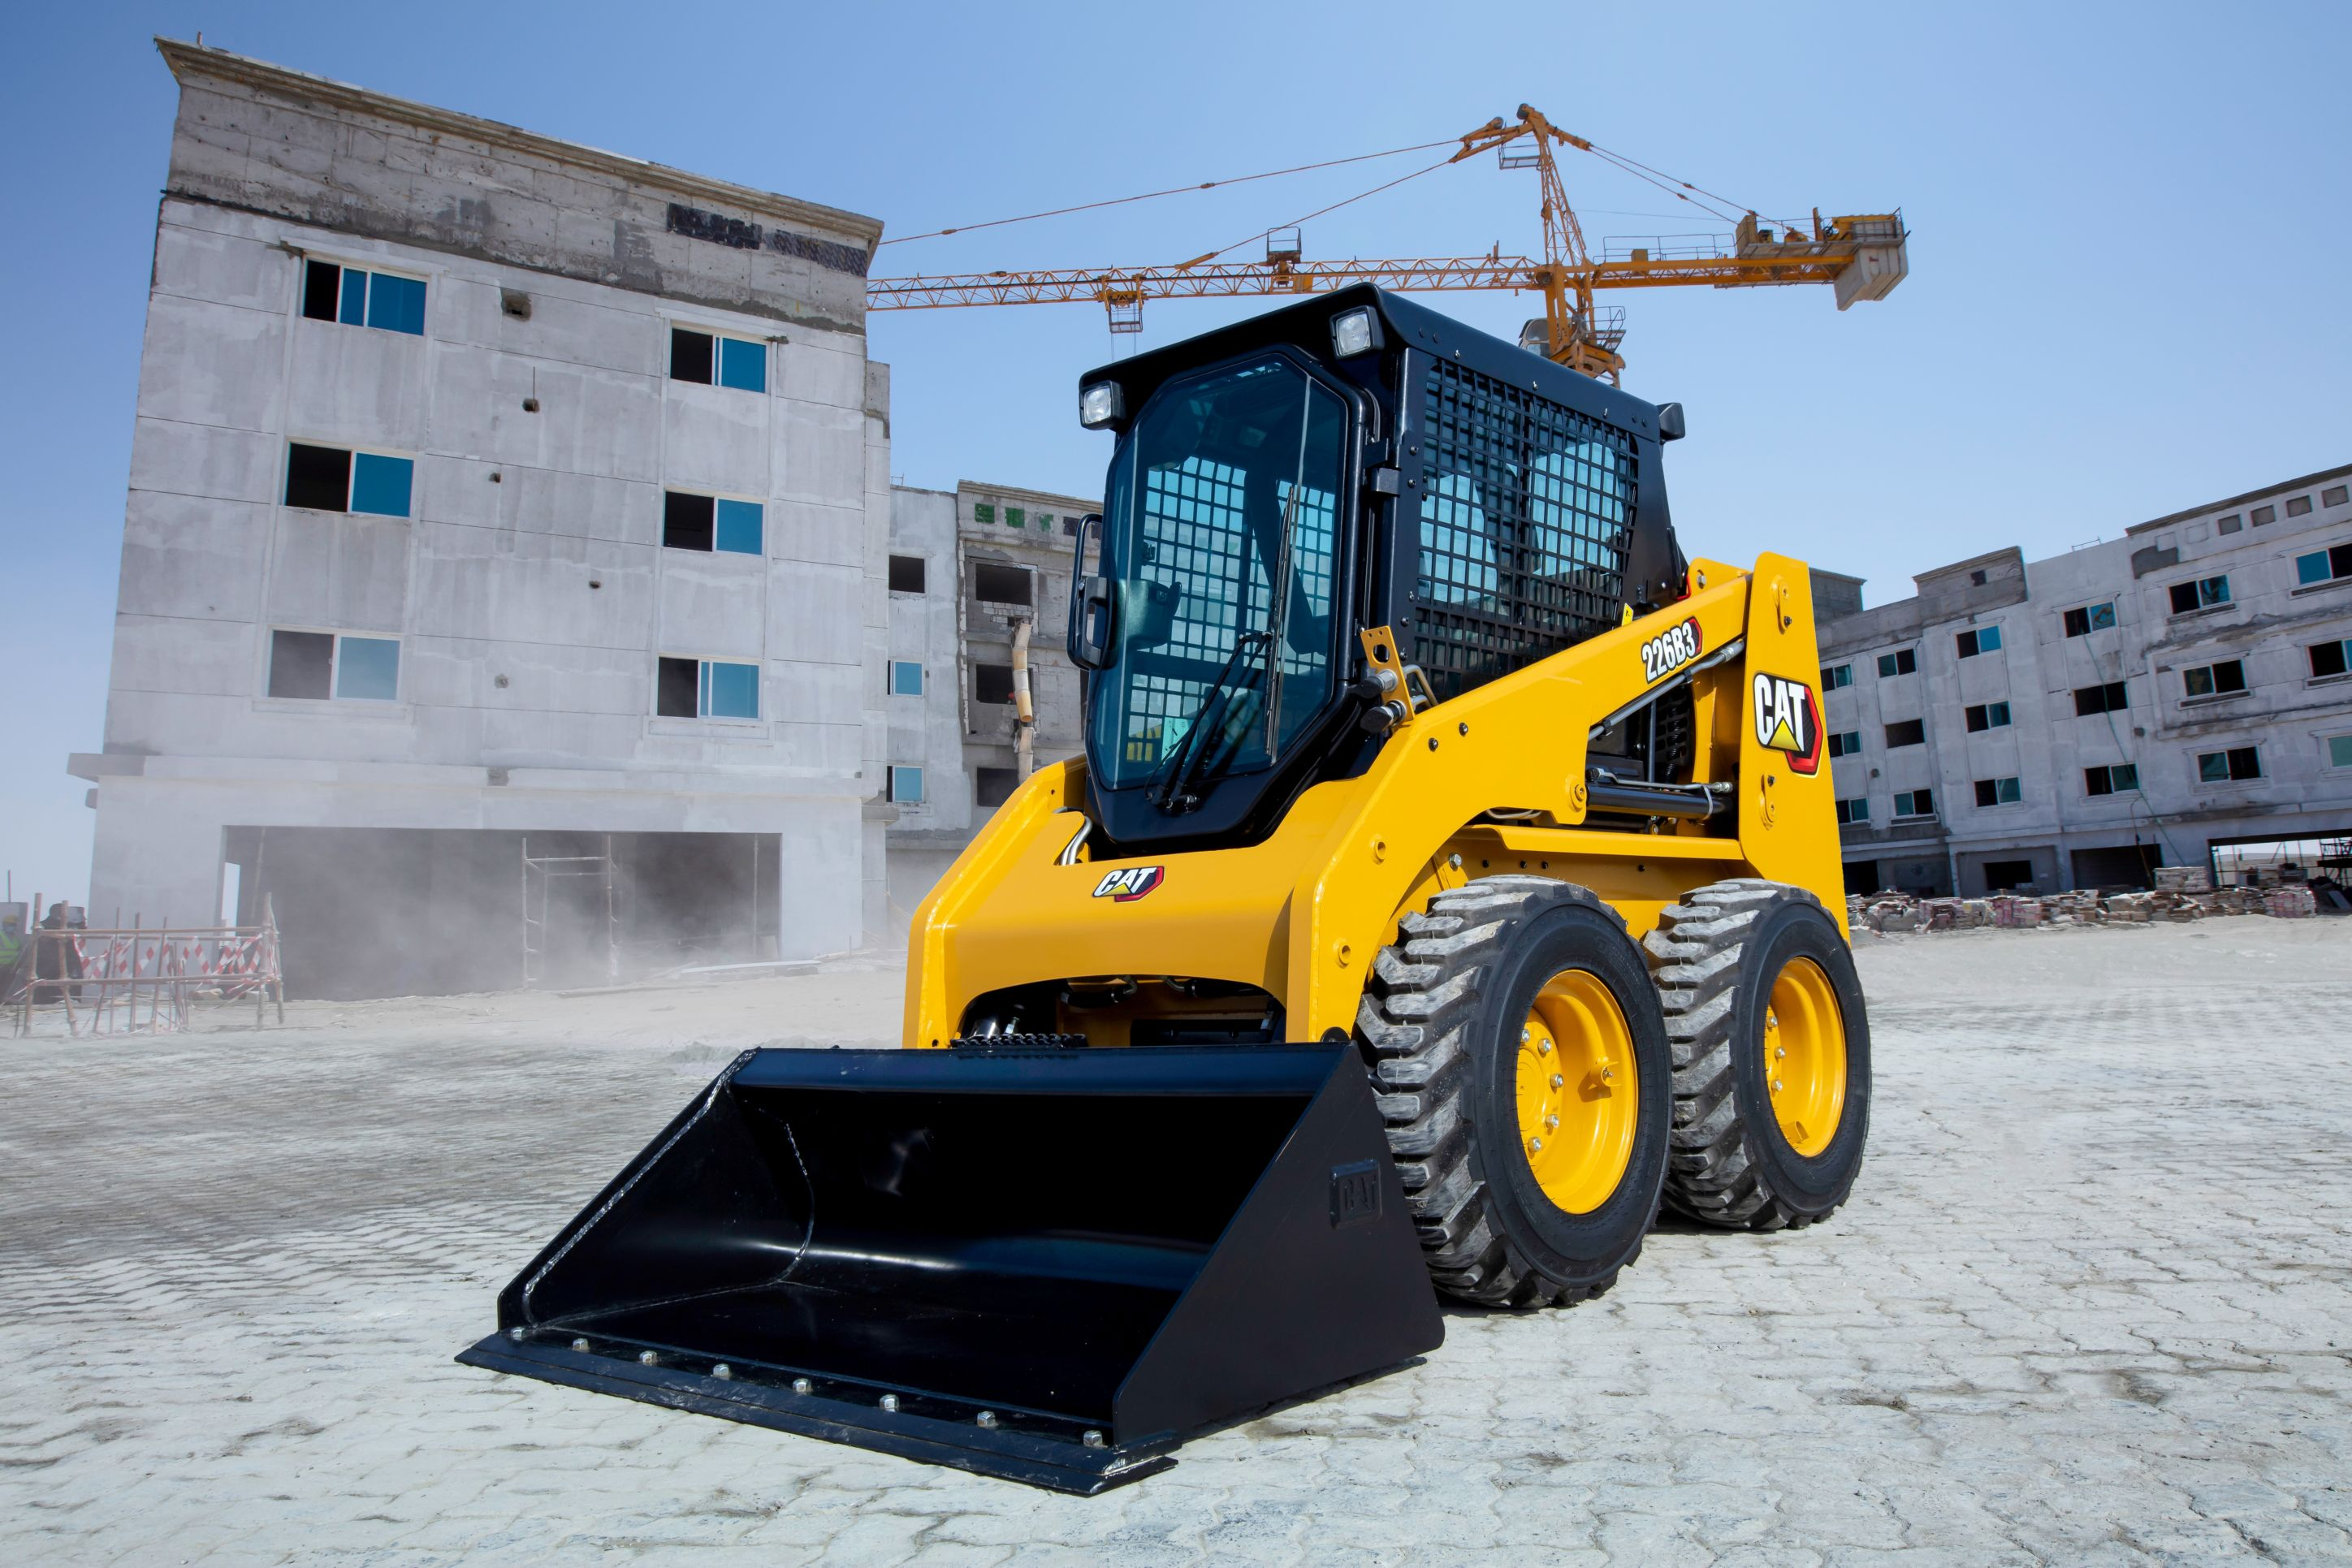 How to Properly Park Your Cat® Heavy Equipment